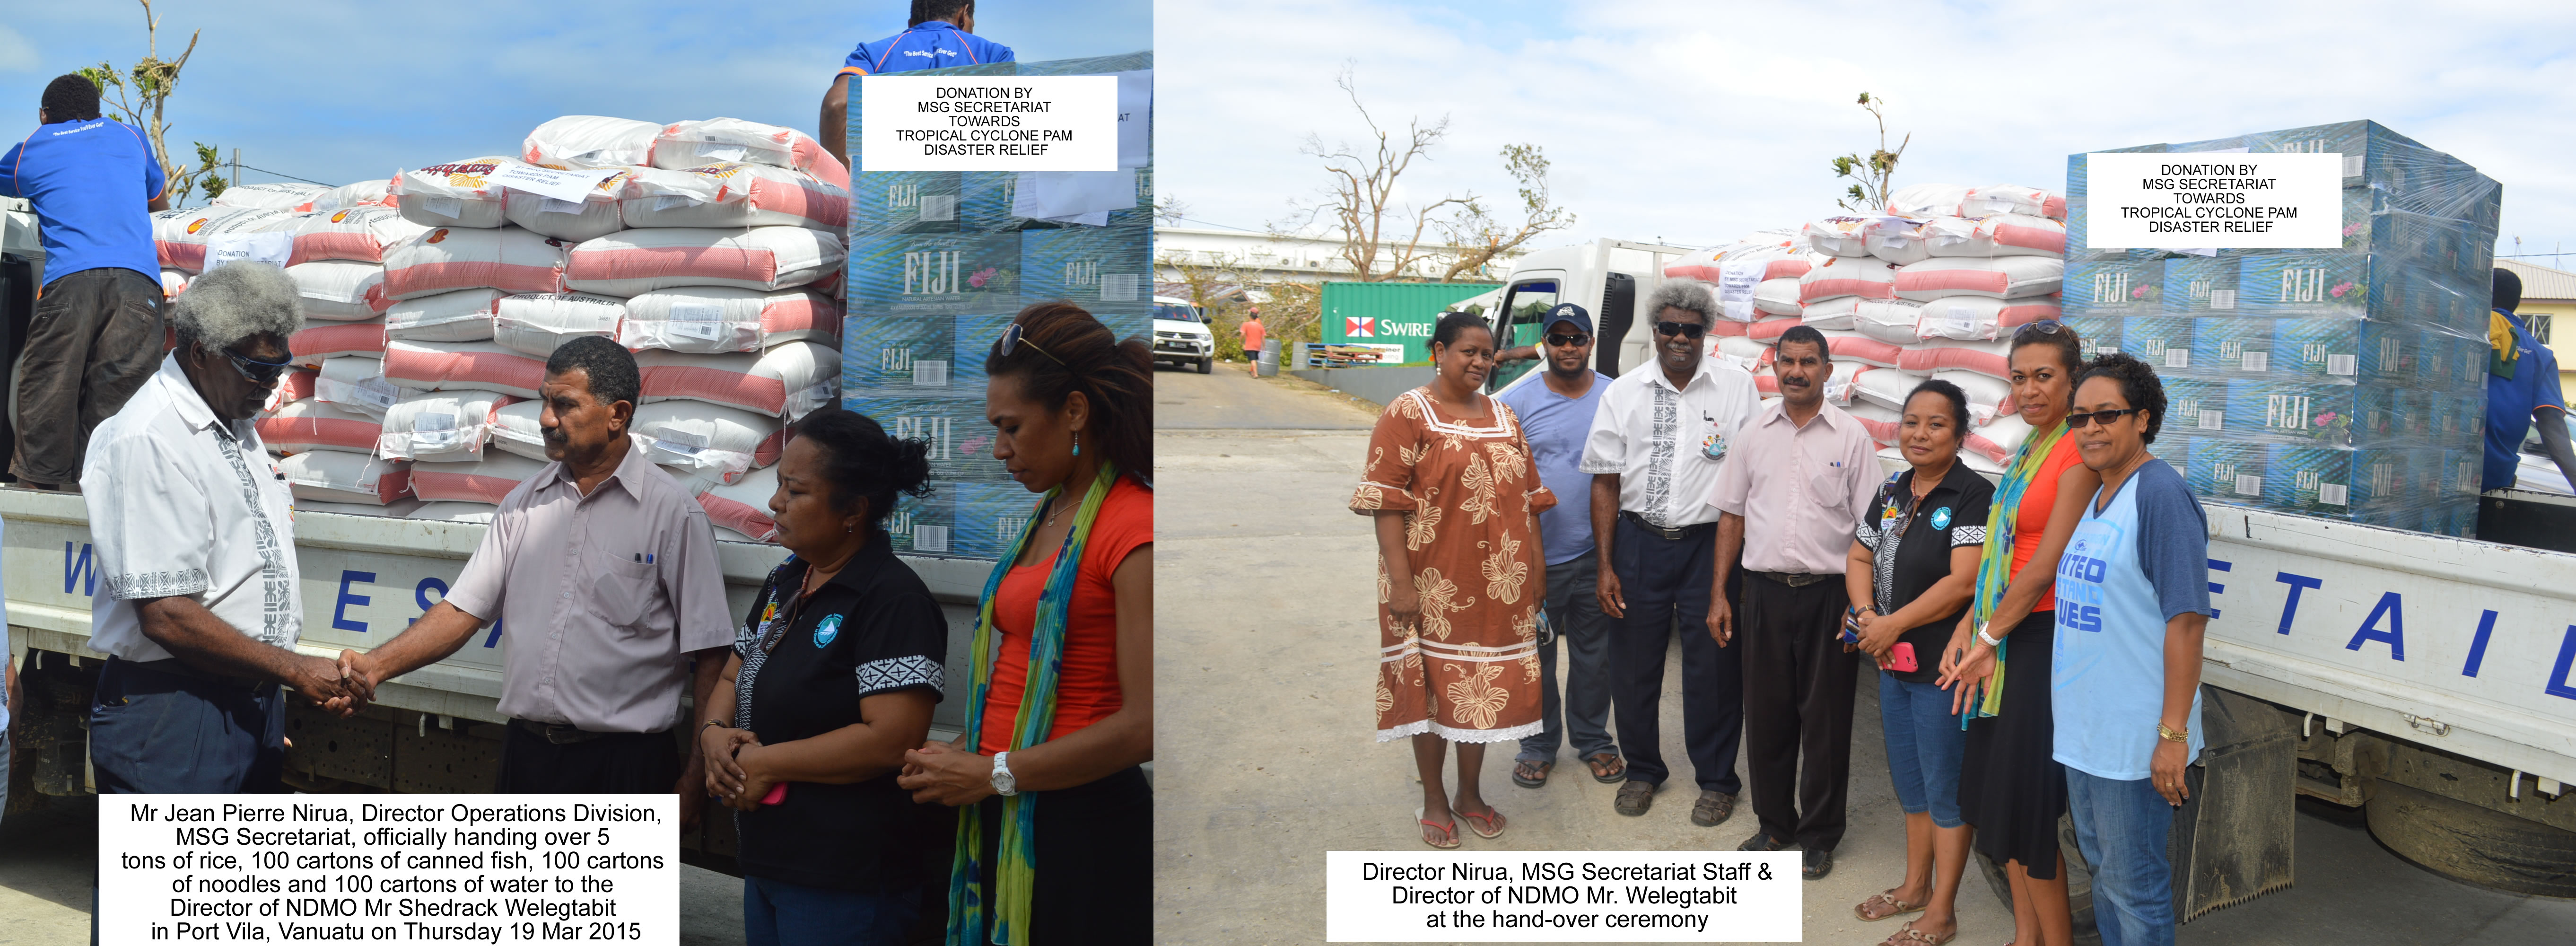 19 mar 2015 - cyclone pam disaster relief